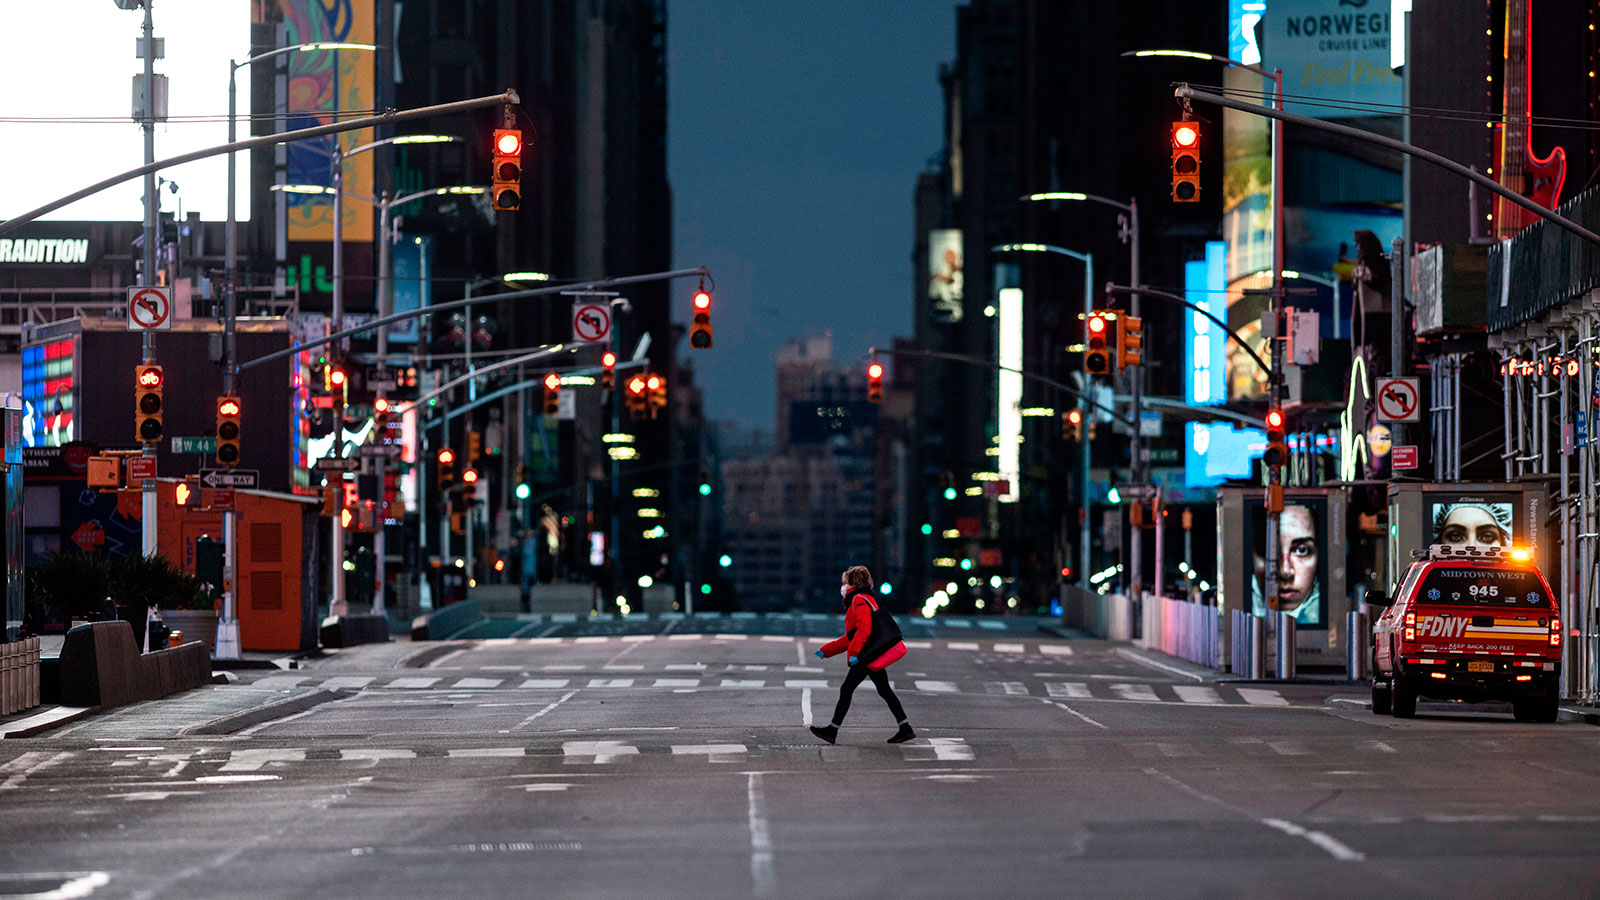 A woman walks through an almost-deserted Times Square in the early morning hours on April 23 in New York City.